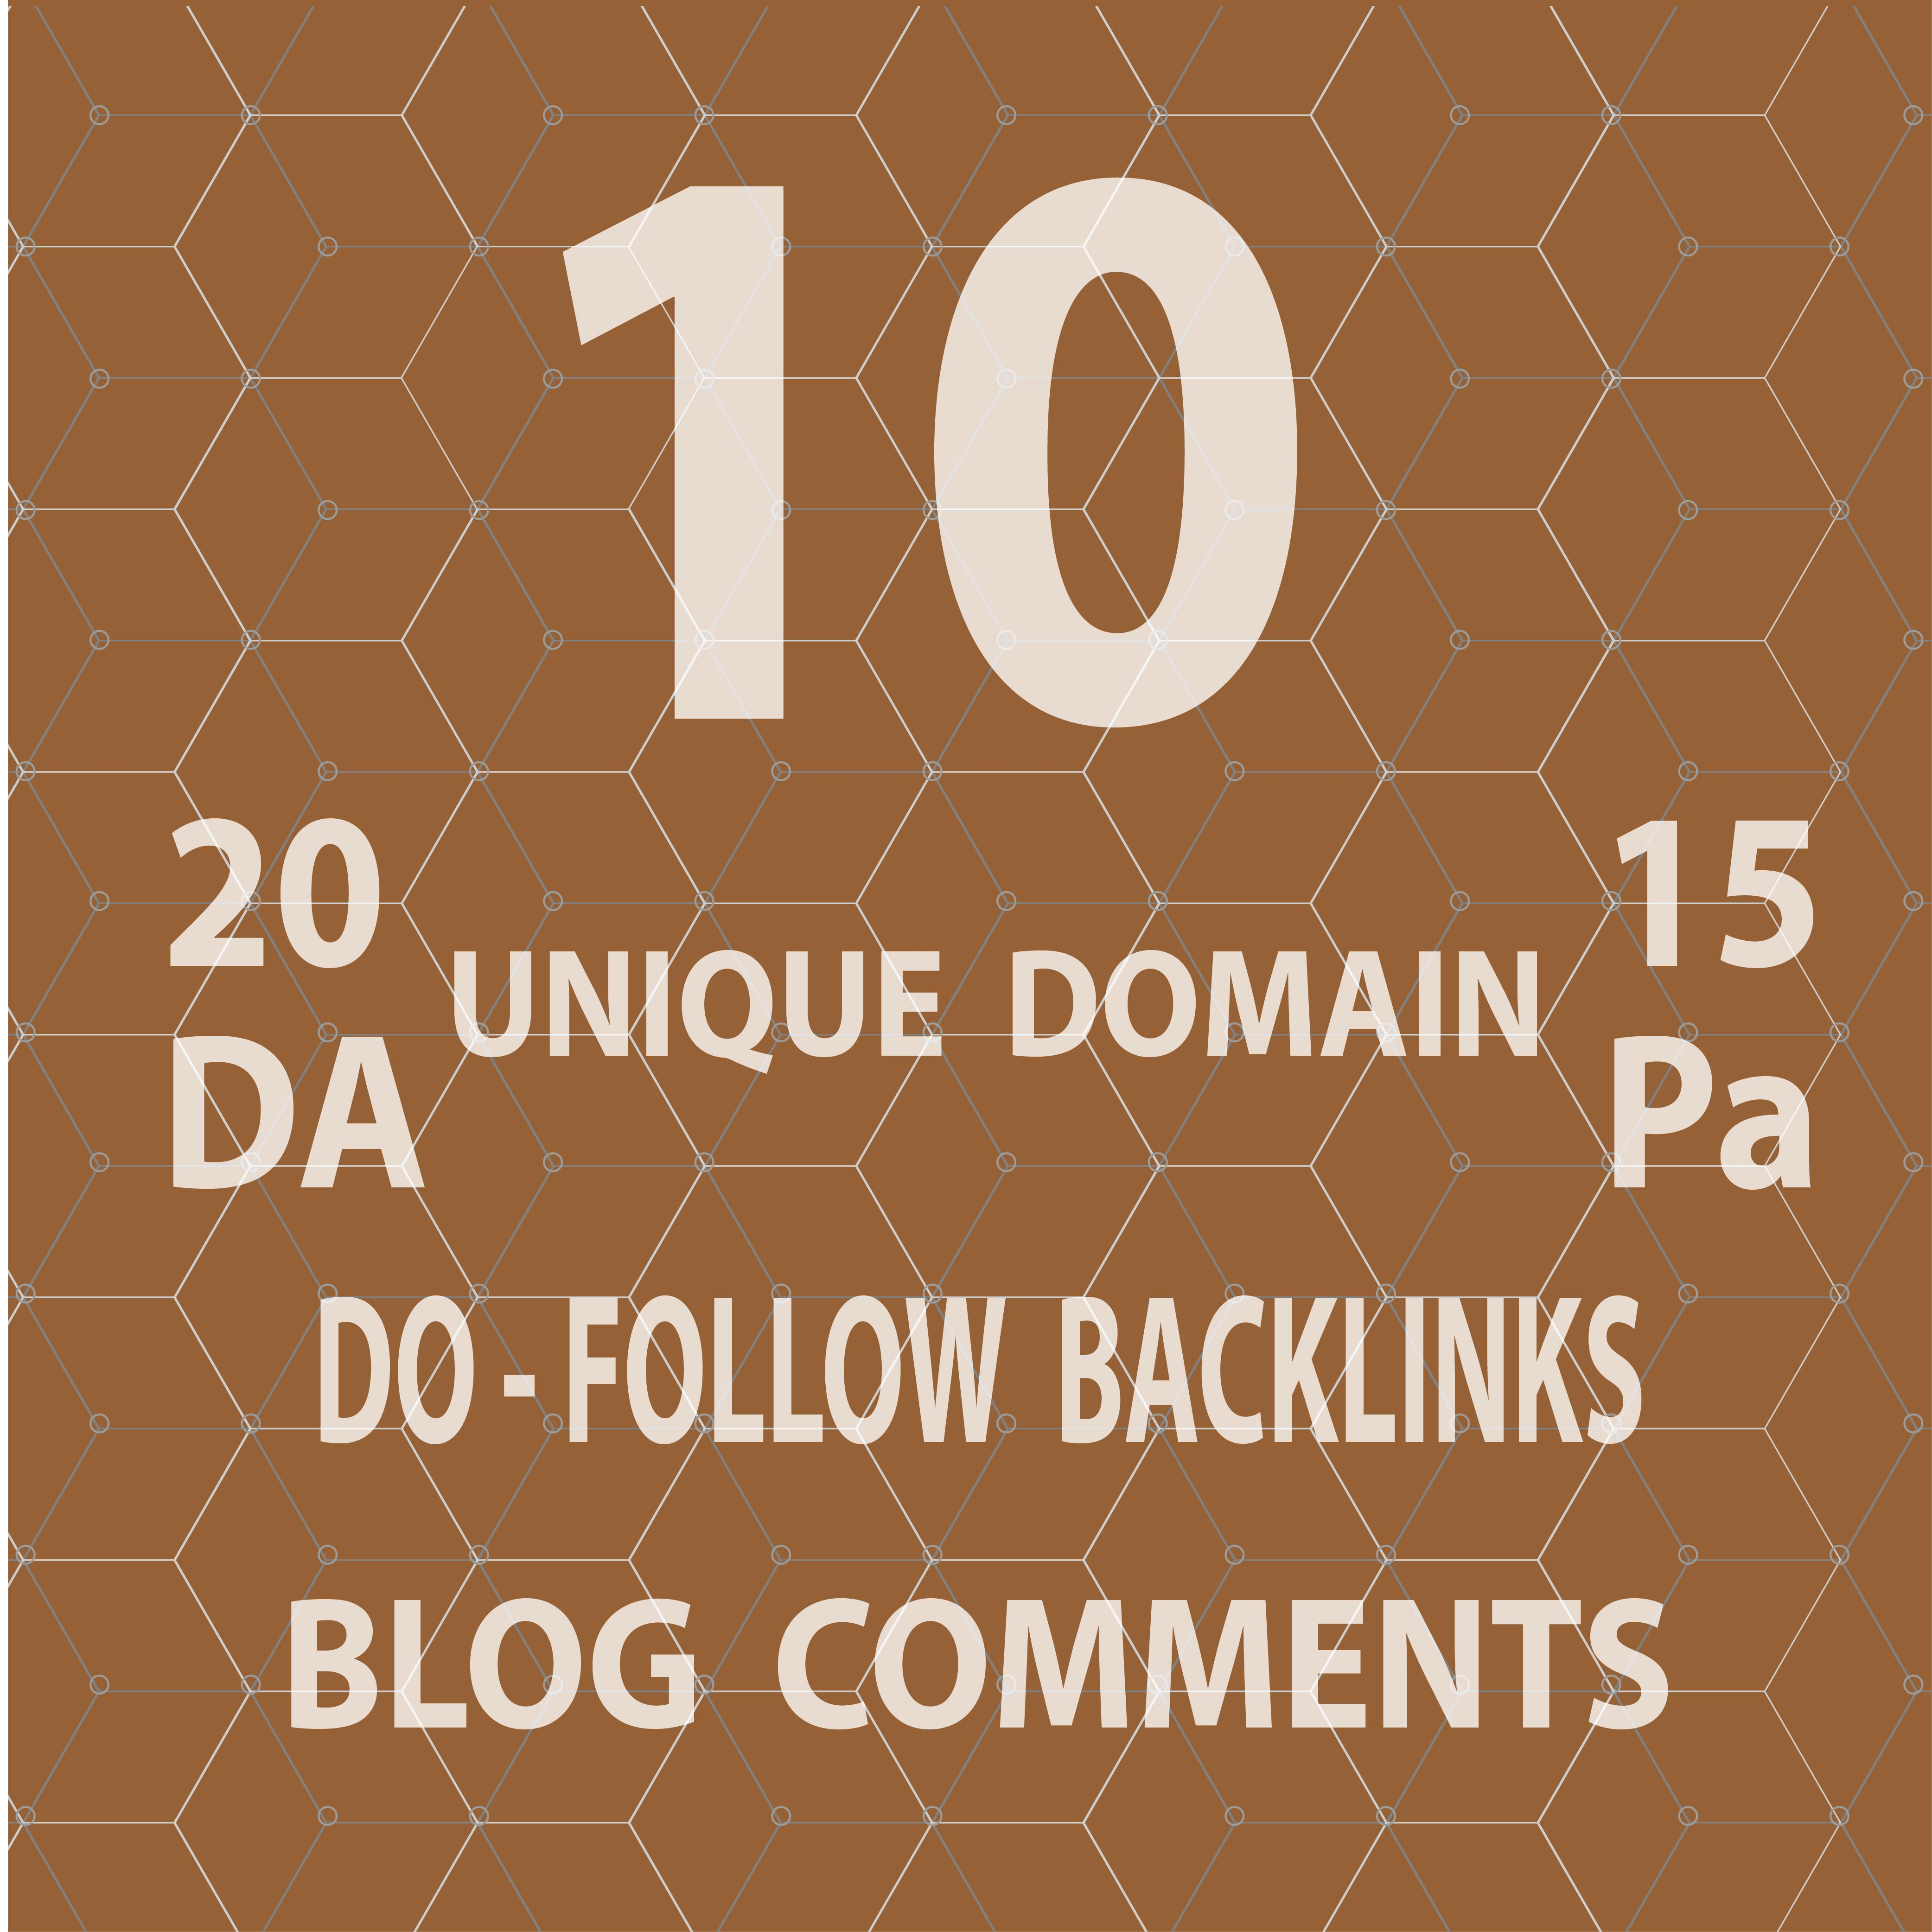 provide 10 unqiue domain dofollow blog comments with high da pa